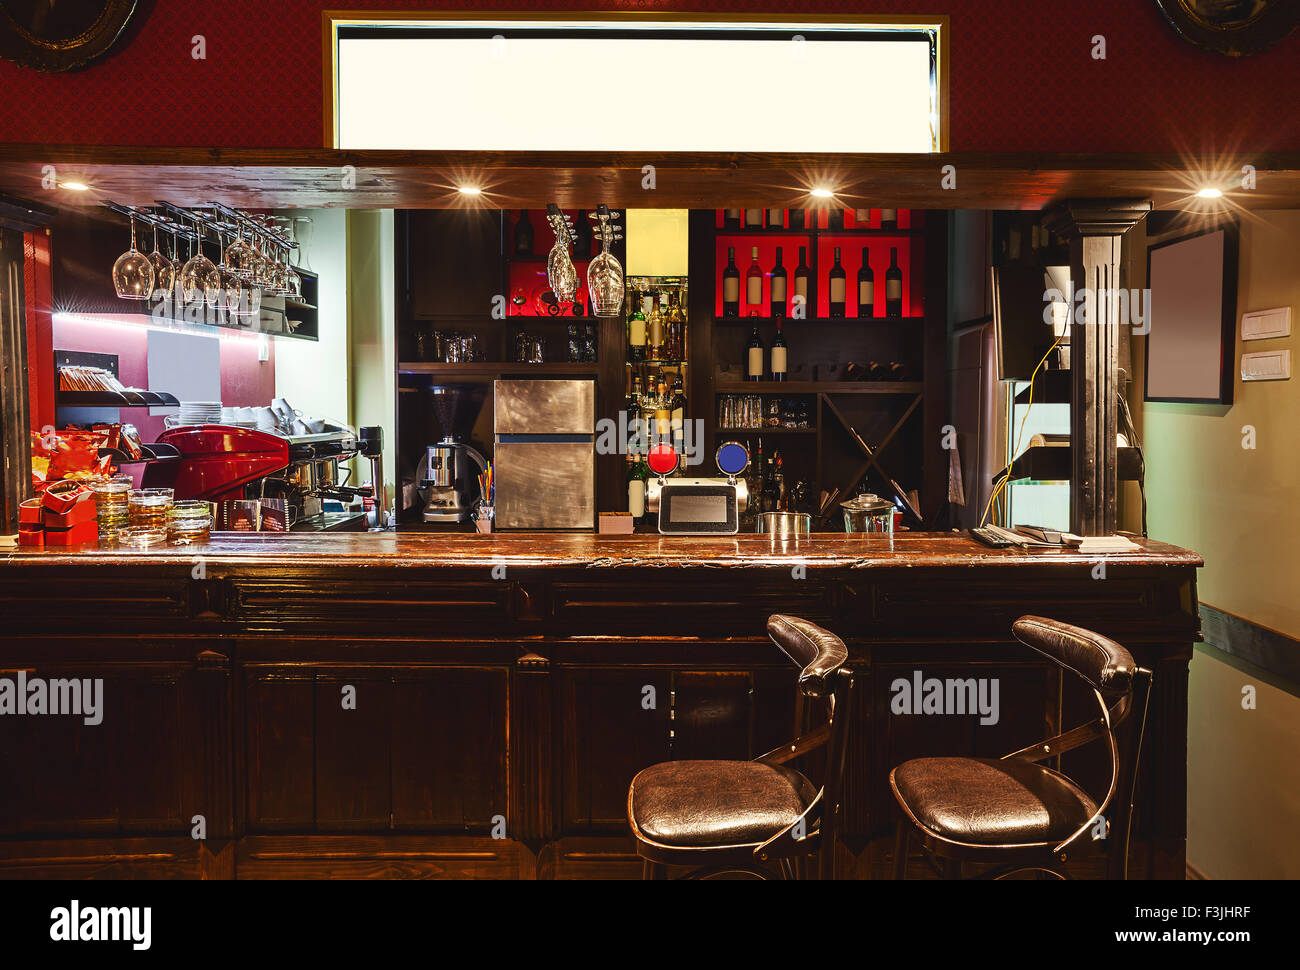 Interior of a modern cafe in retro style, night scene. Illumination, furniture and architectural details. - Stock Image